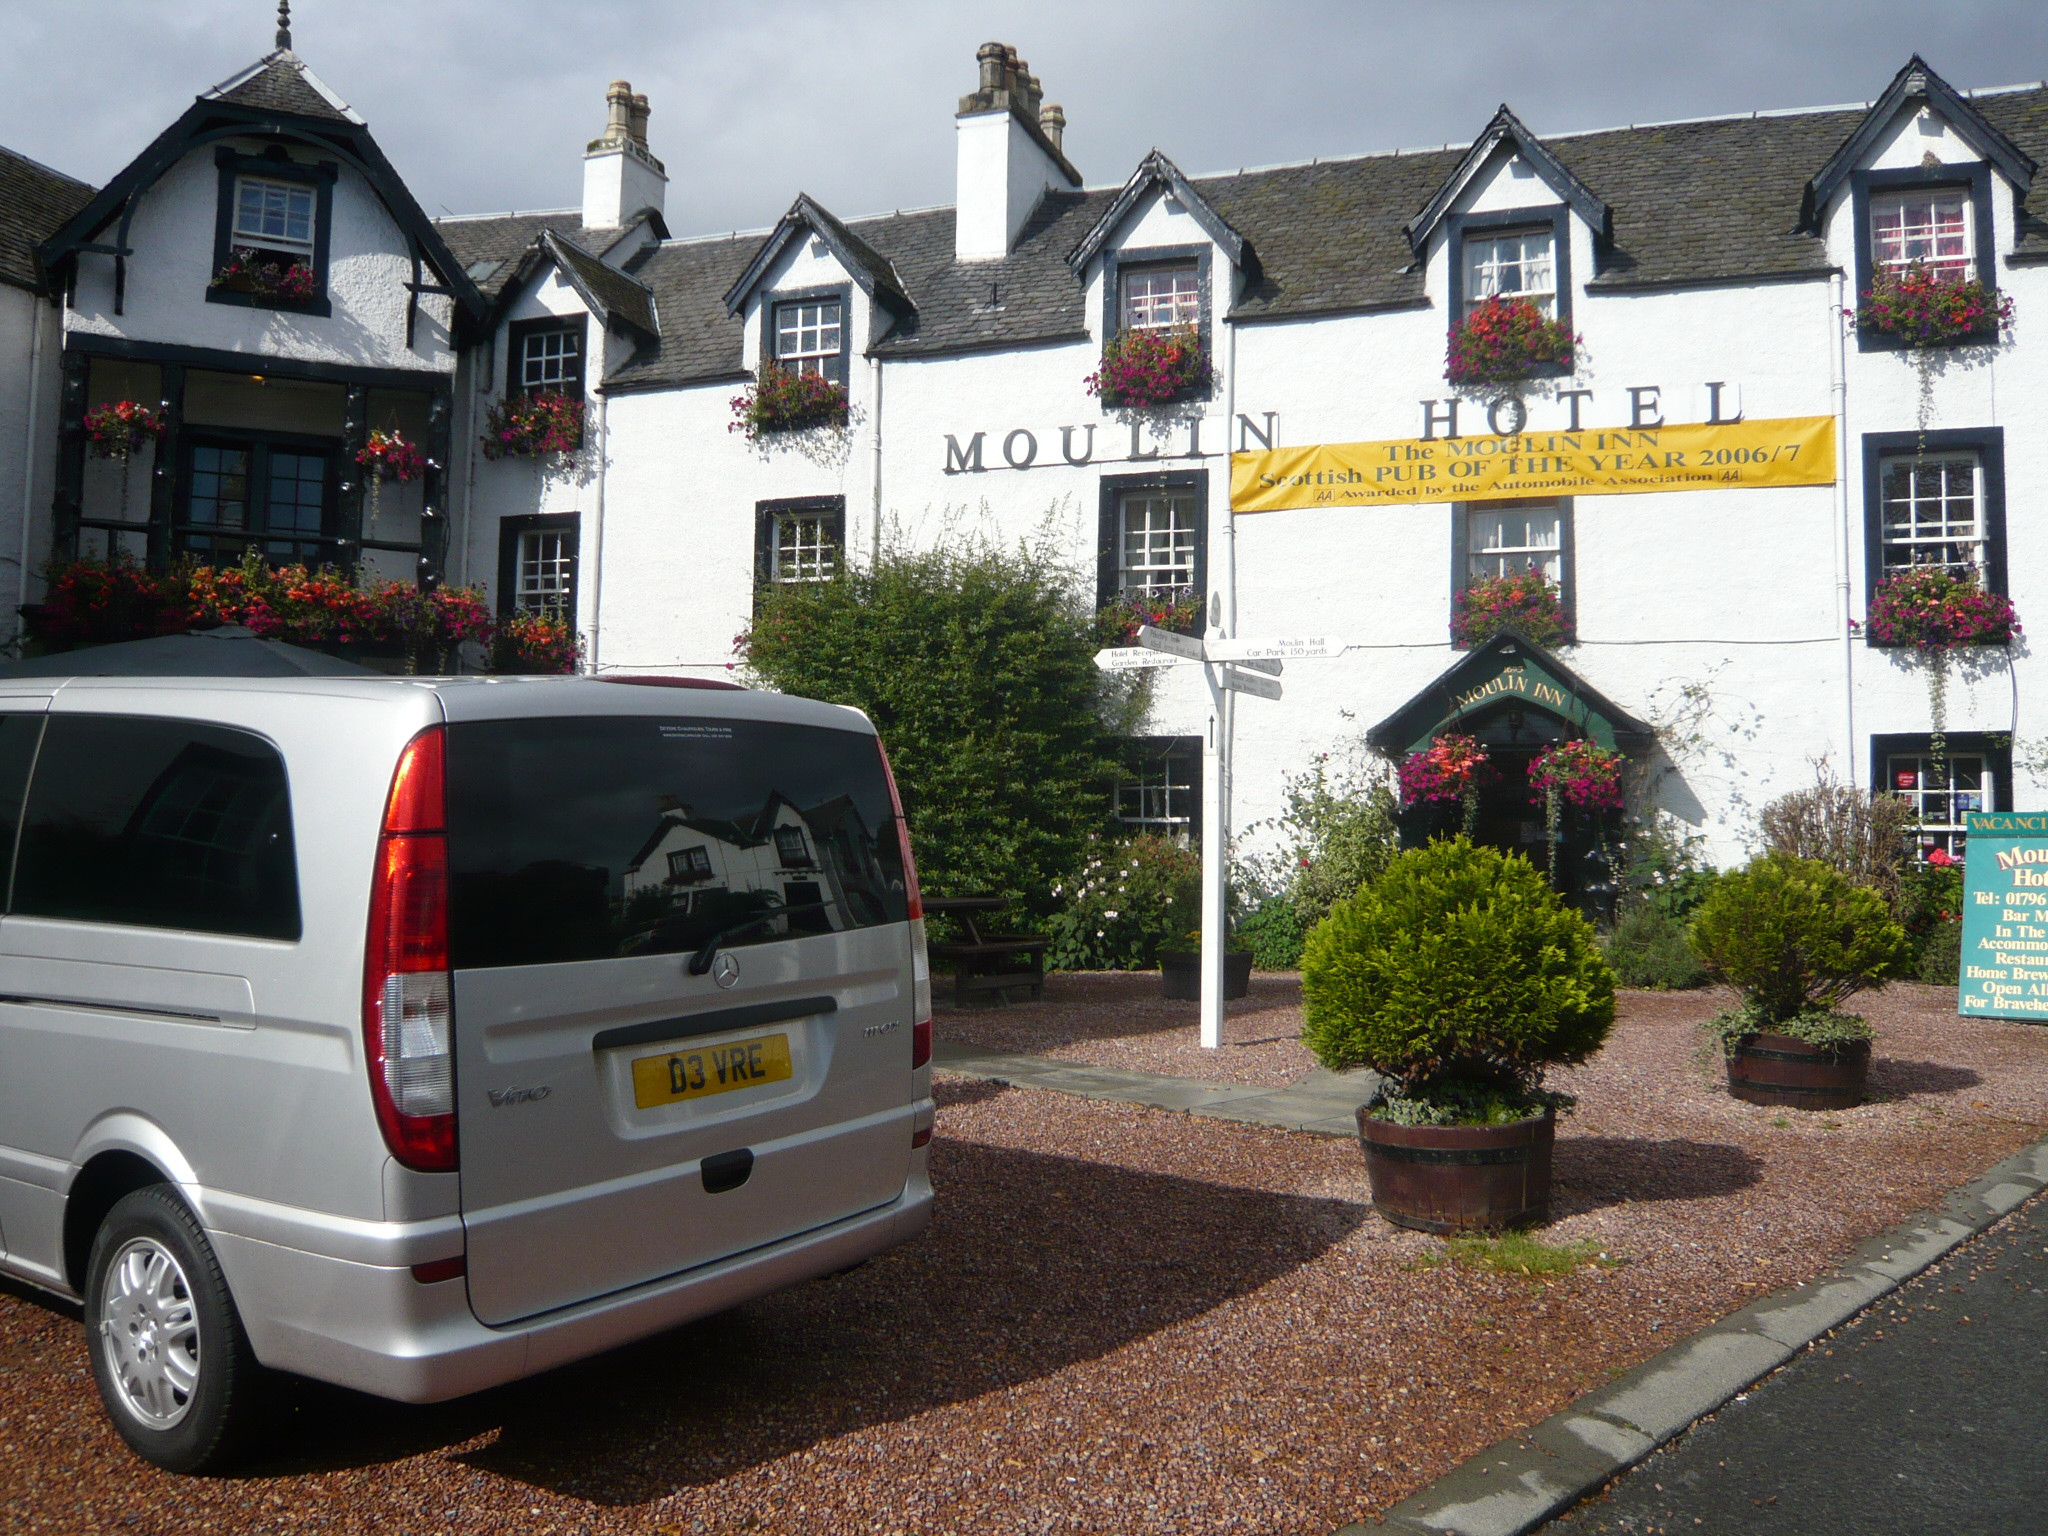 A stop for lunch in a relaxed atmosphere at one of our favourite Scottish Inn's